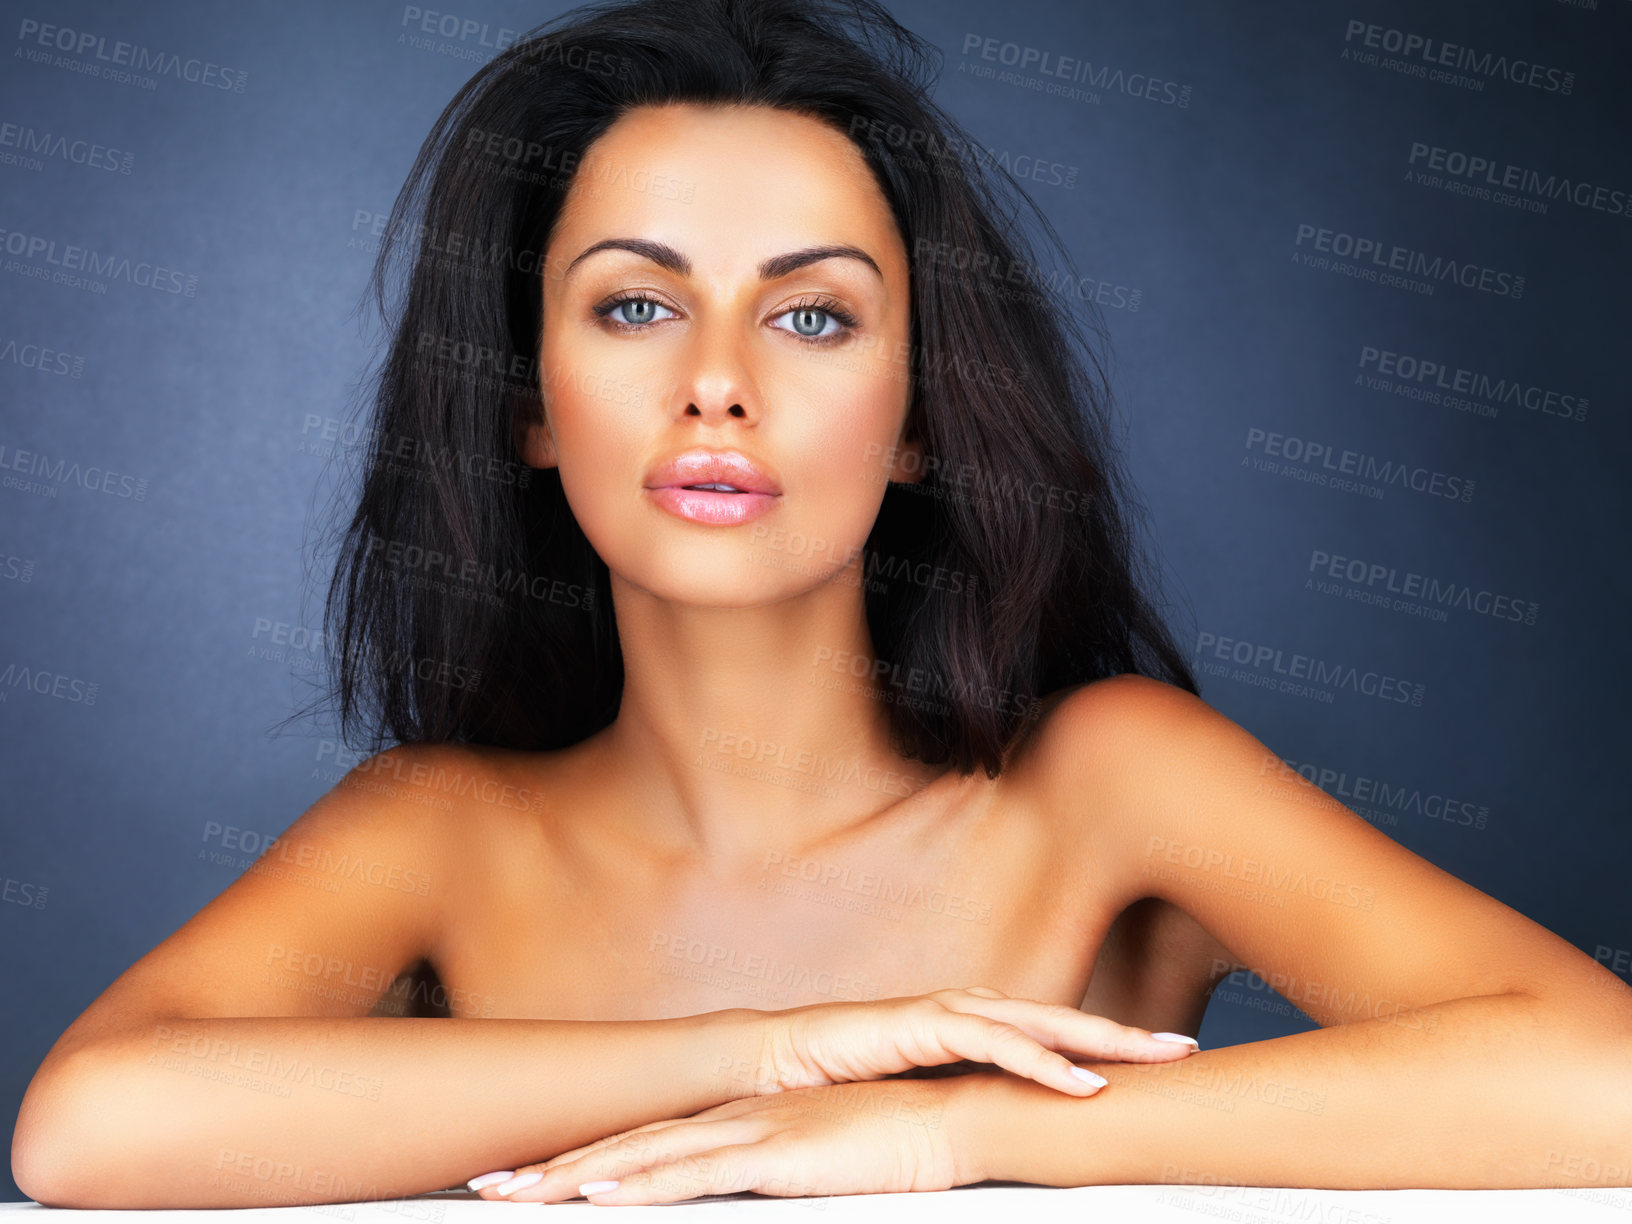 Beauty and confidence | Buy Stock Photo on PeopleImages